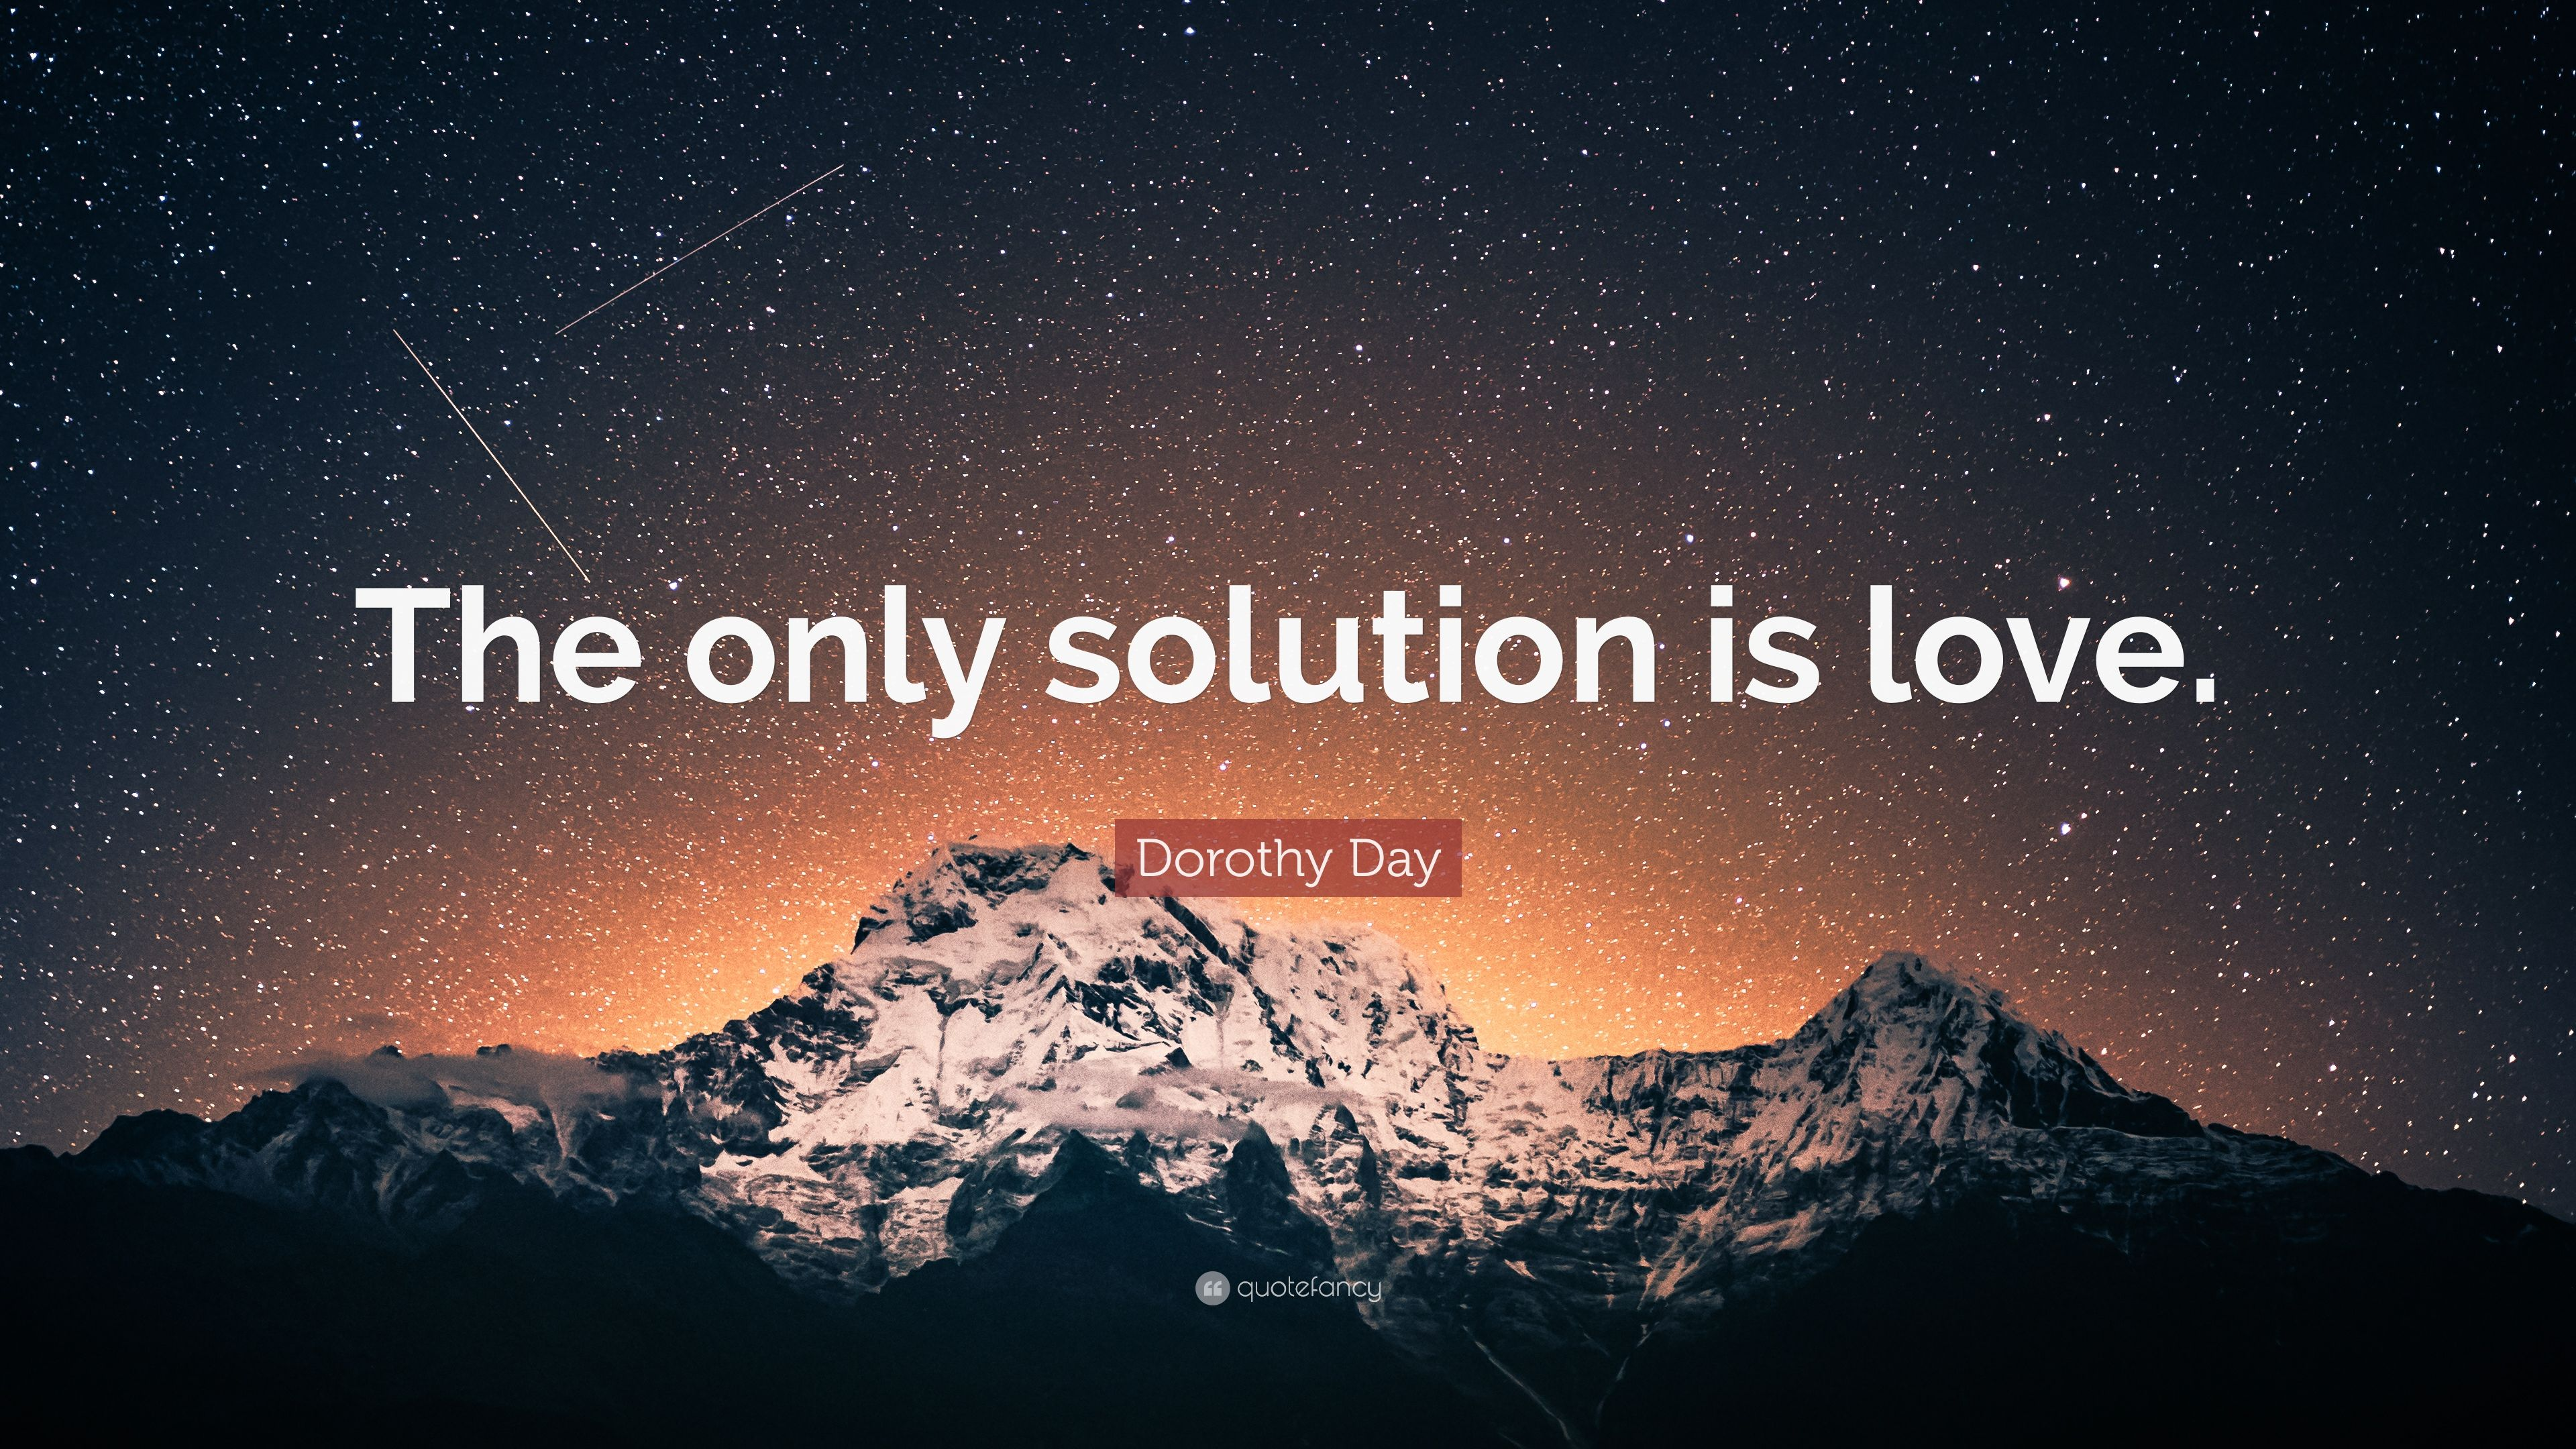 dorothy day quote the only solution is love 9 wallpapers quotefancy. Black Bedroom Furniture Sets. Home Design Ideas